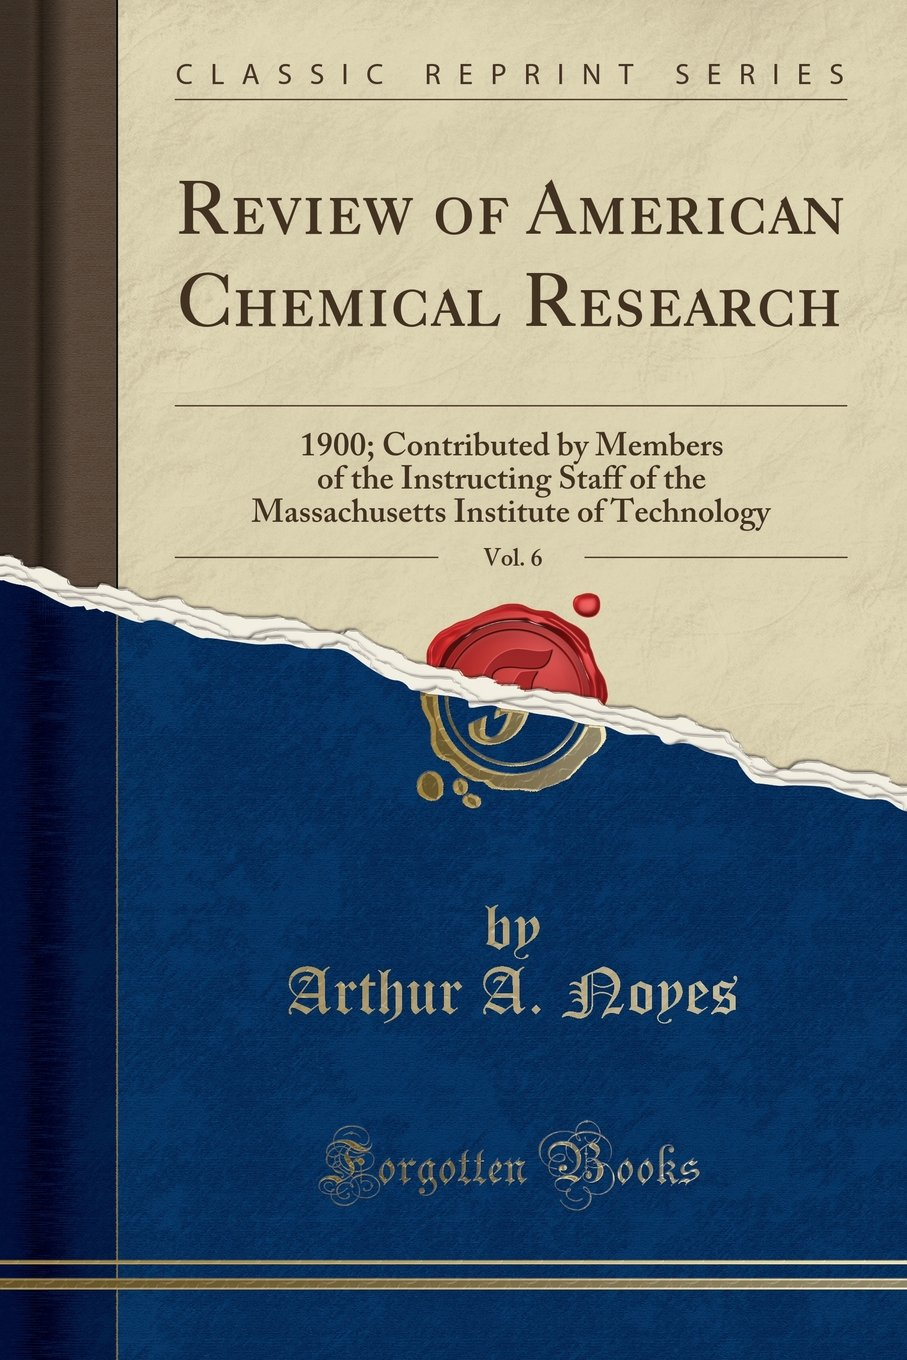 Review of American Chemical Research, Vol. 6: 1900; Contributed by Members of the Instructing Staff of the Massachusetts Institute of Technology (Classic Reprint) pdf